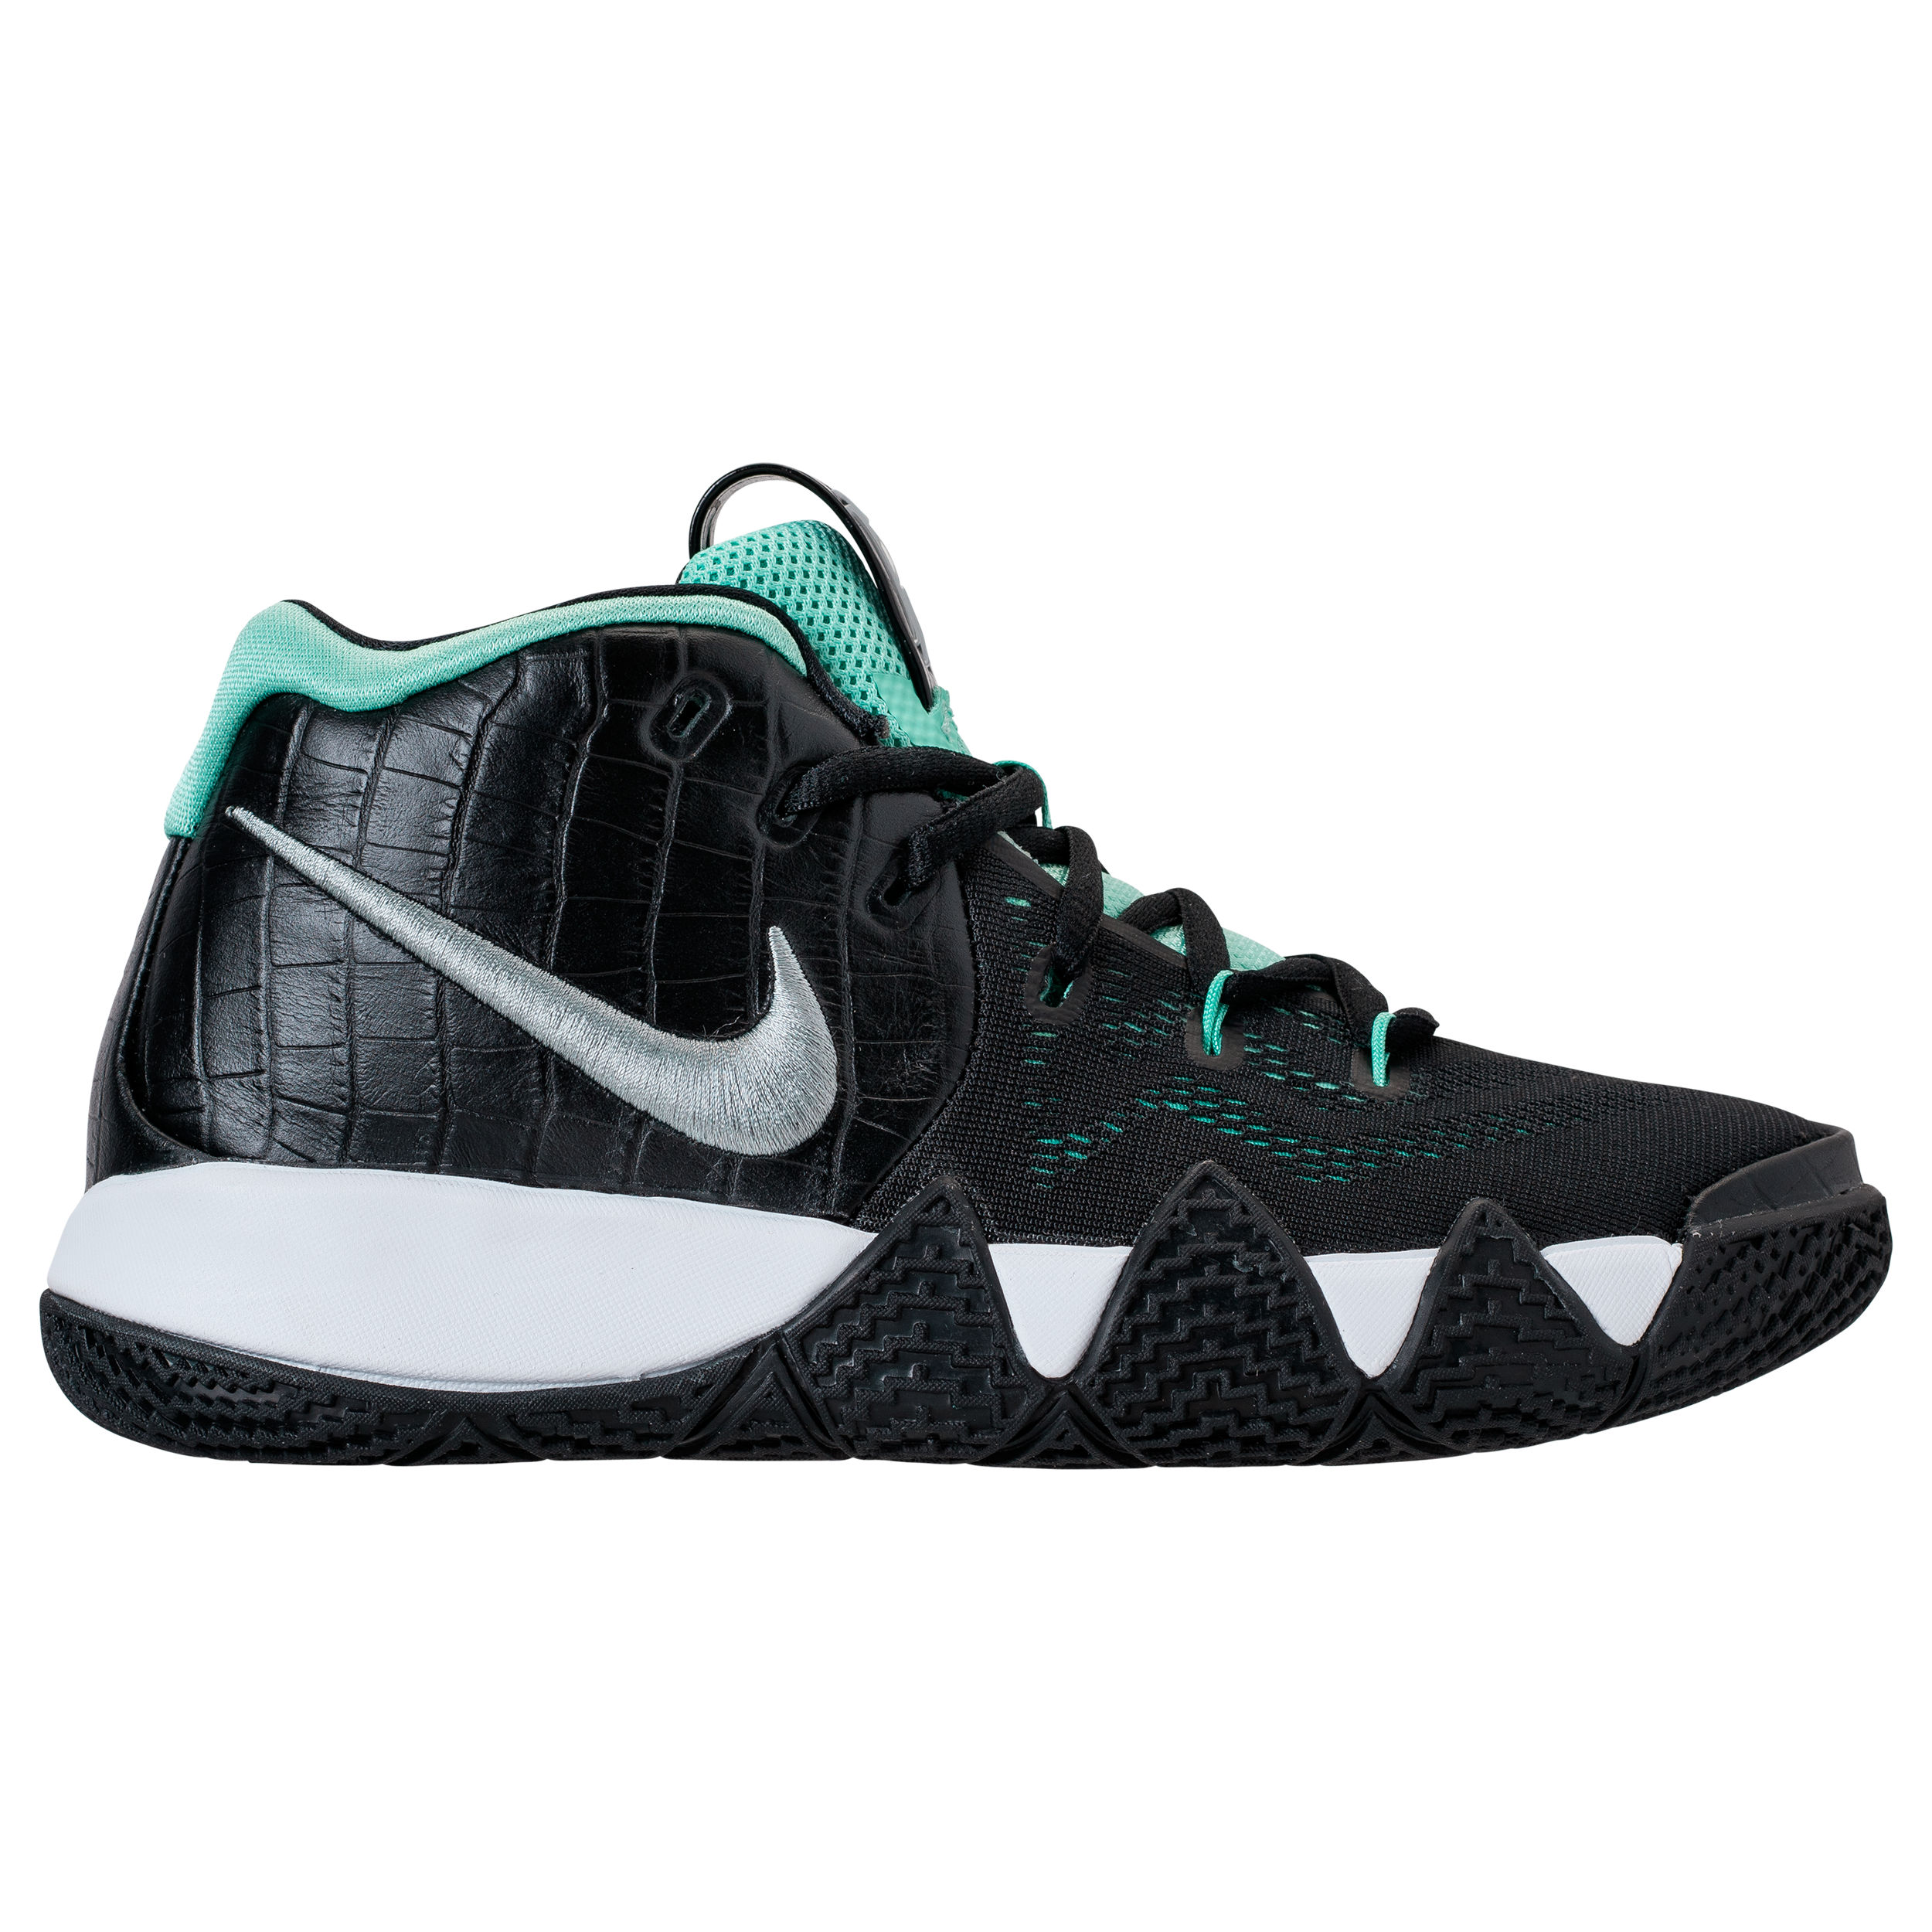 timeless design b514f 3453e A Tiffany Nike Kyrie 4 Colorway is Coming Soon - WearTesters